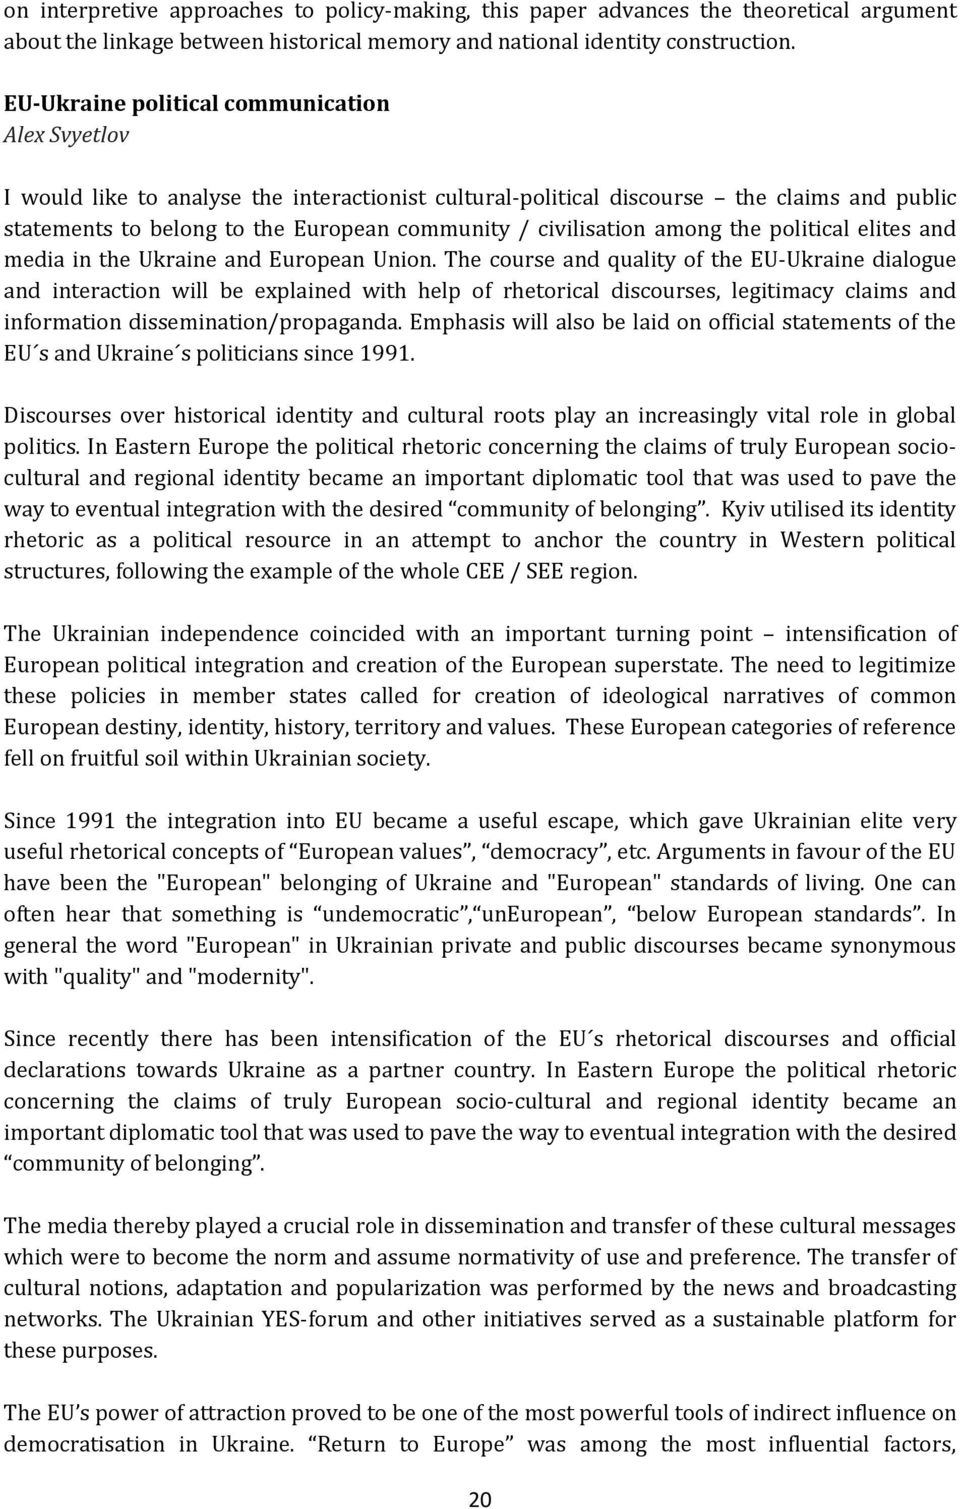 civilisation among the political elites and media in the Ukraine and European Union.